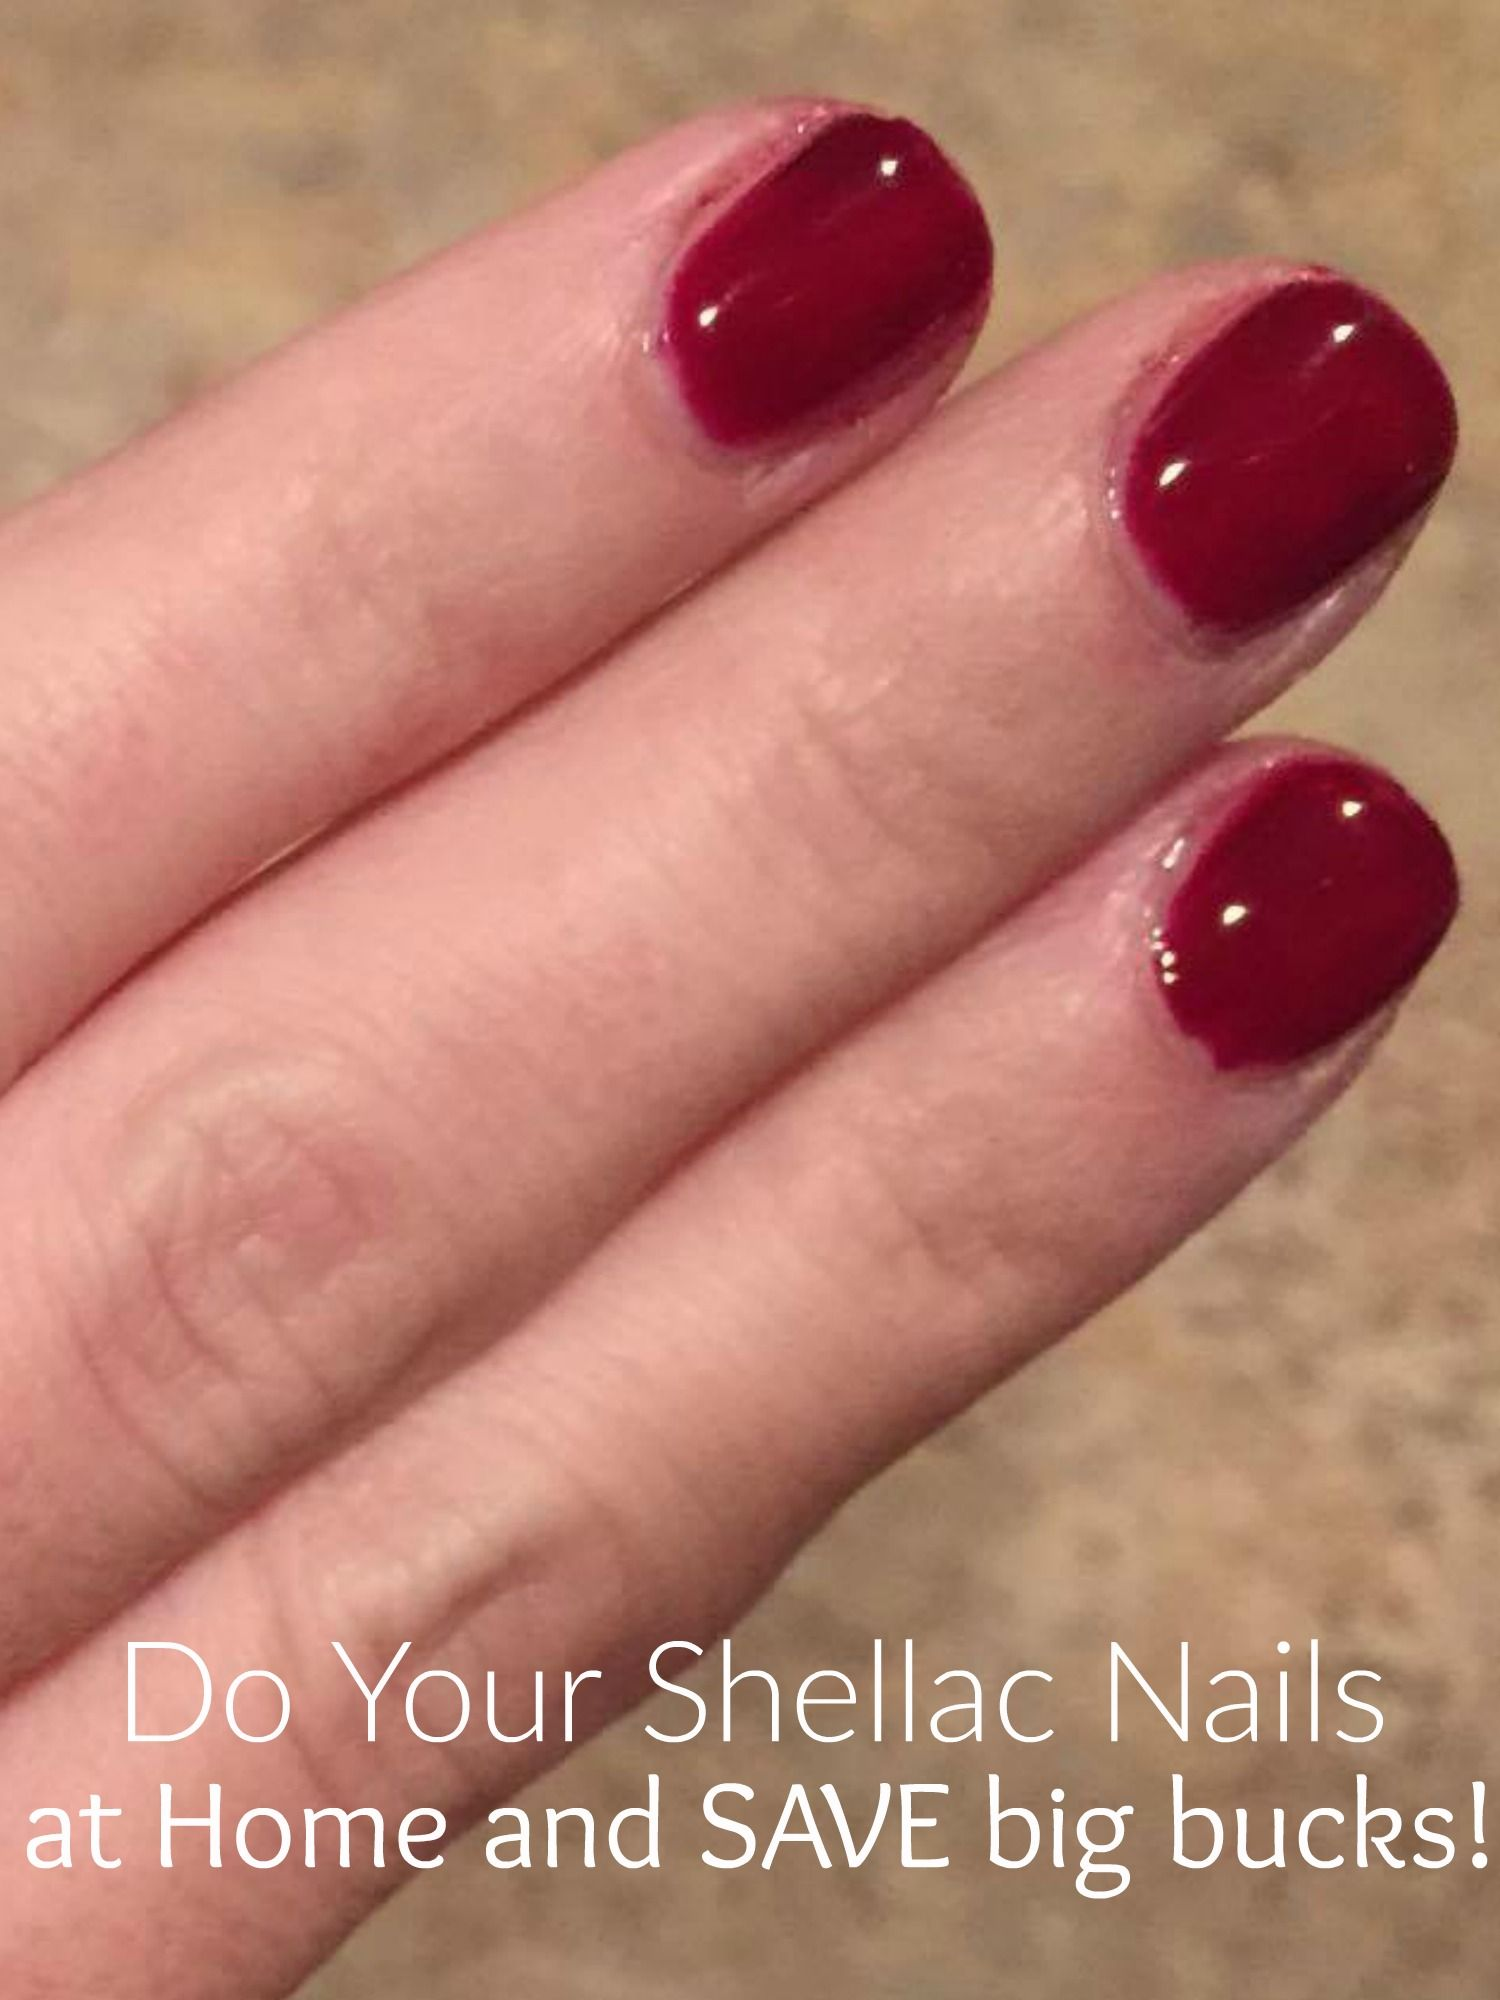 Shellac nails on a budget how to do shellac nails at home to shellac nails on a budget how to do shellac nails at home to save money and time i do my own shellac nails at home and you can too its a s solutioingenieria Choice Image